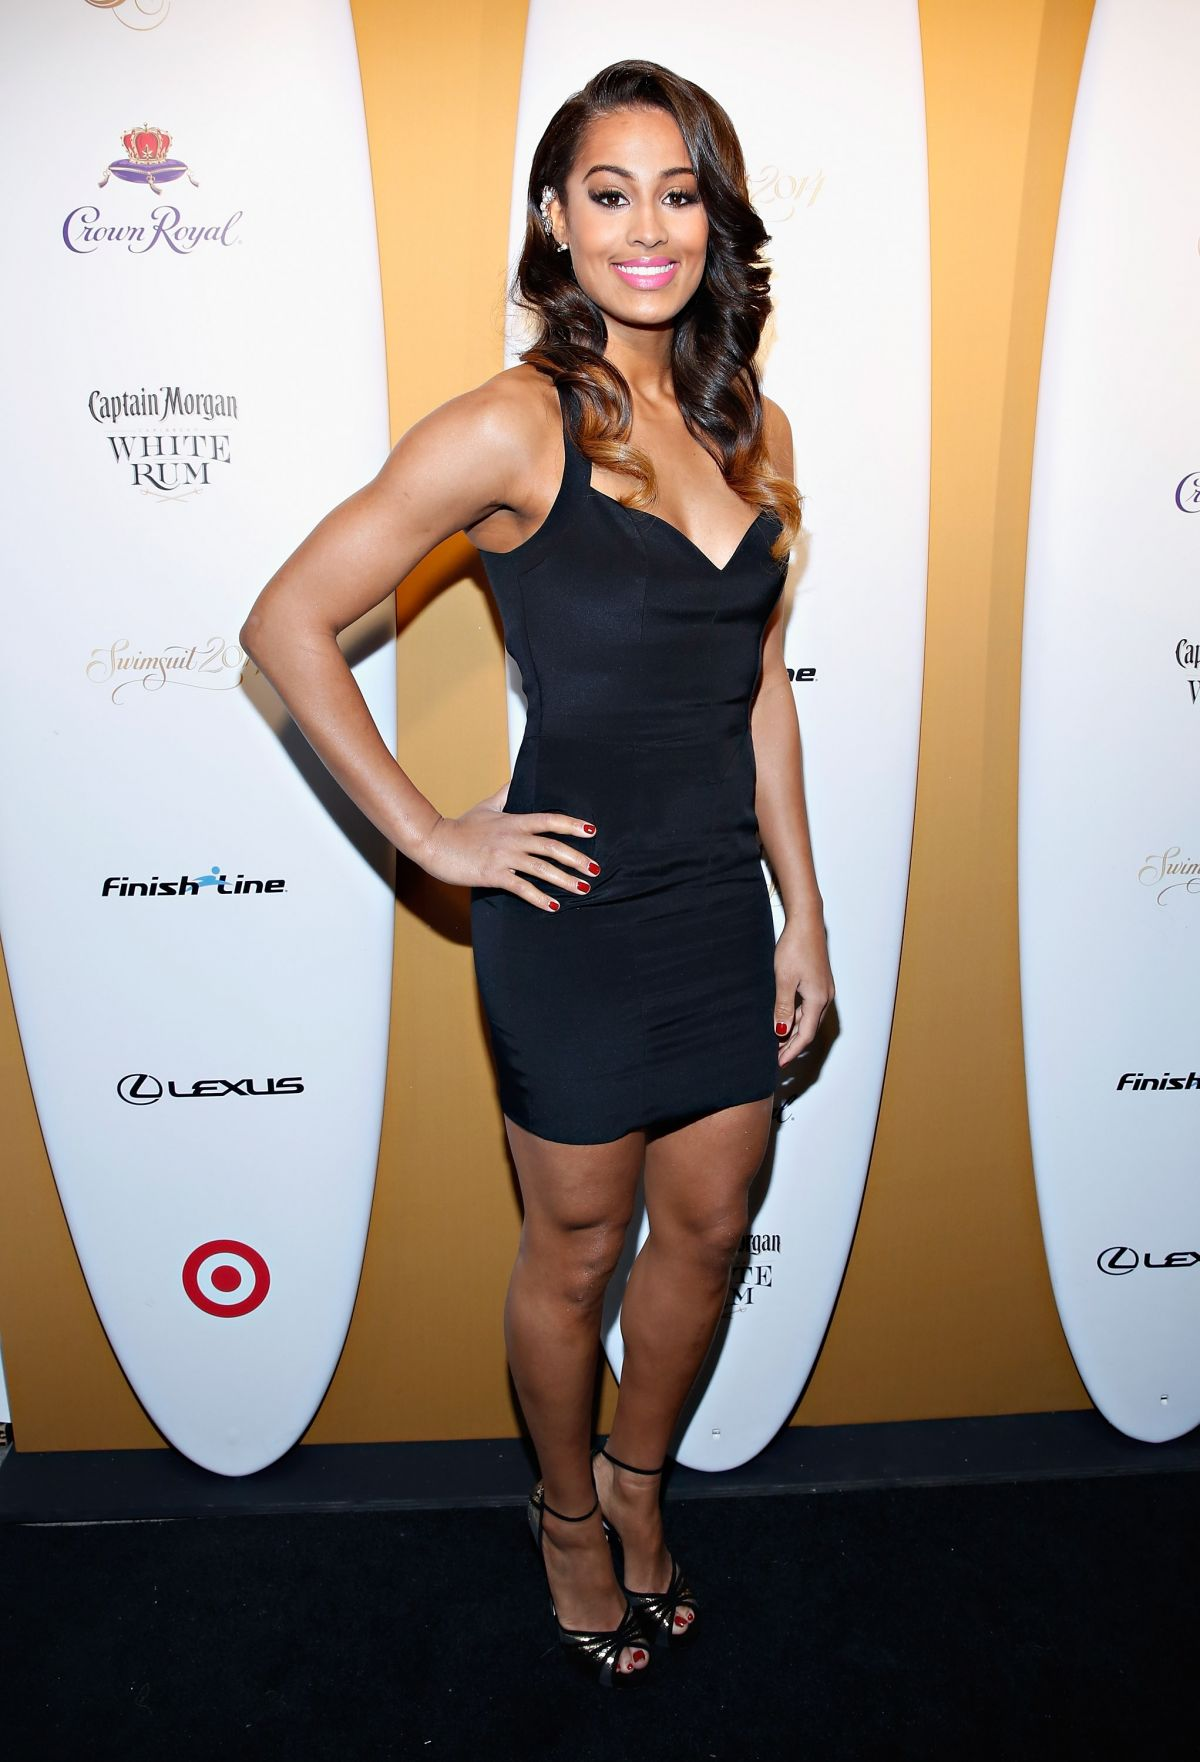 Skylar Diggins At Sports Illustrated Swimsuit Issue Kick Off Event